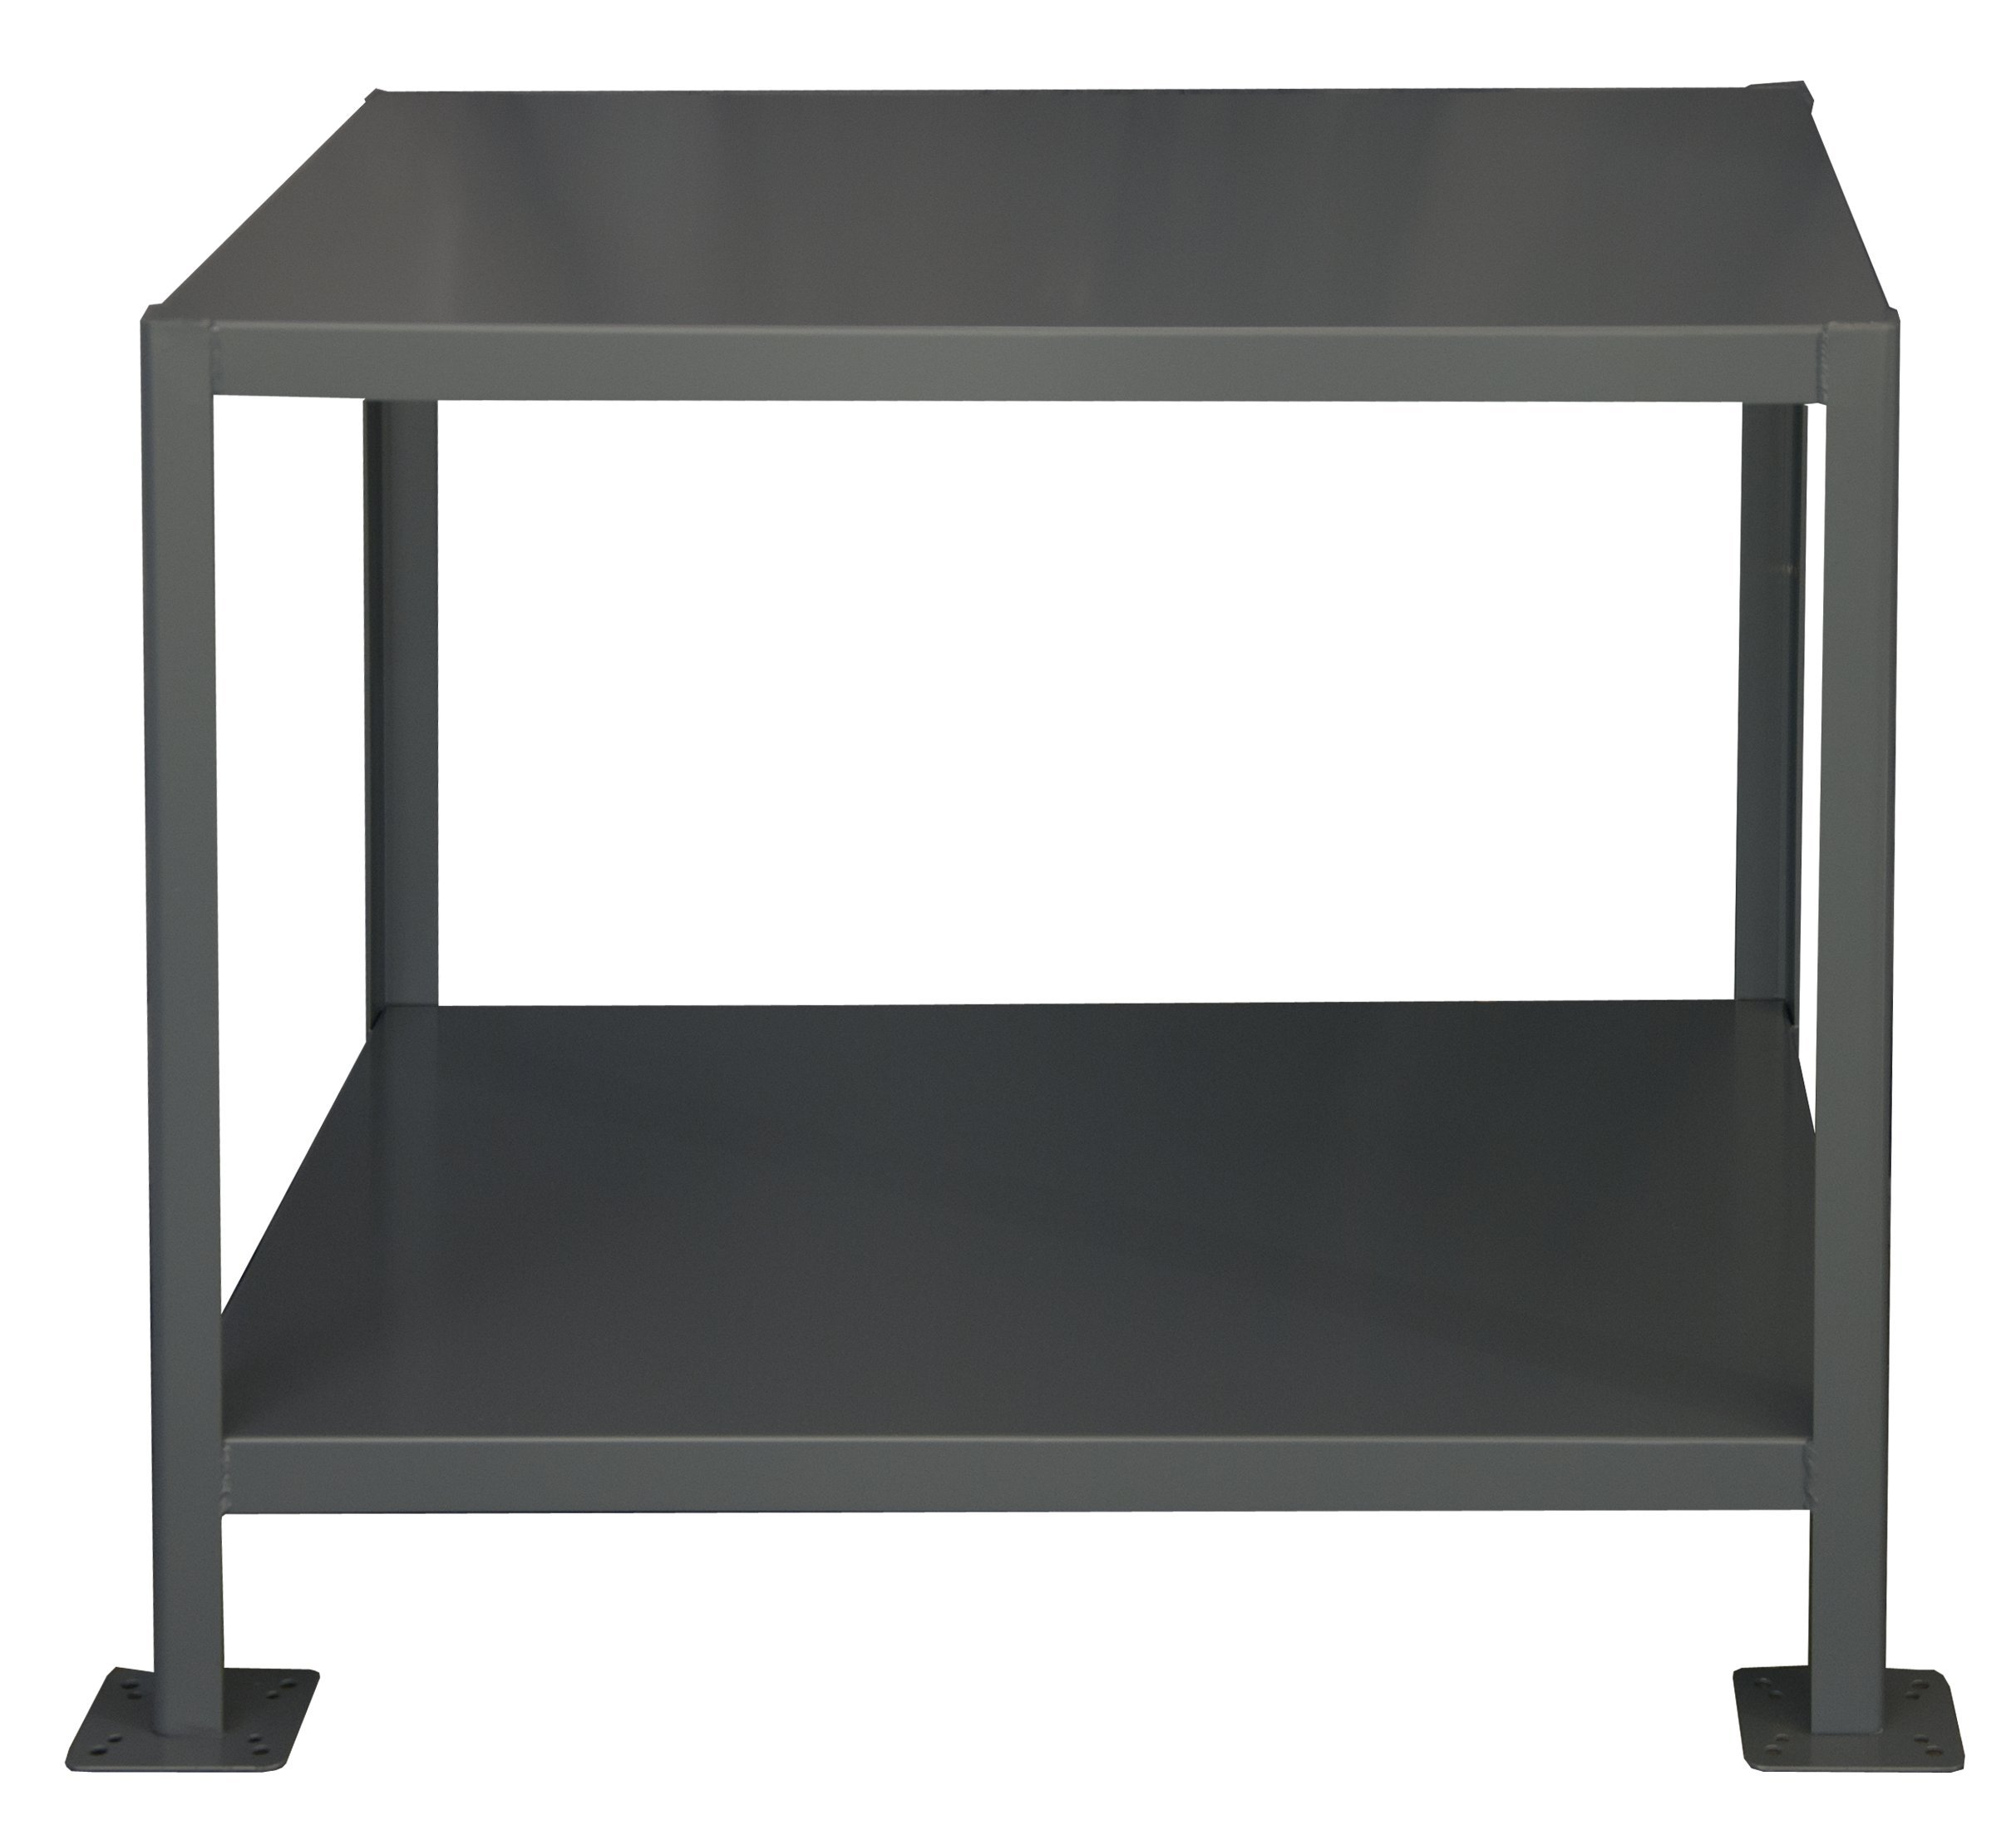 Durham Steel Heavy Duty Machine Table, MT364836-3K295,  2 Shelves,  3000 lbs Capacity,  48'' Length x 36'' Width x 36'' Height by Durham